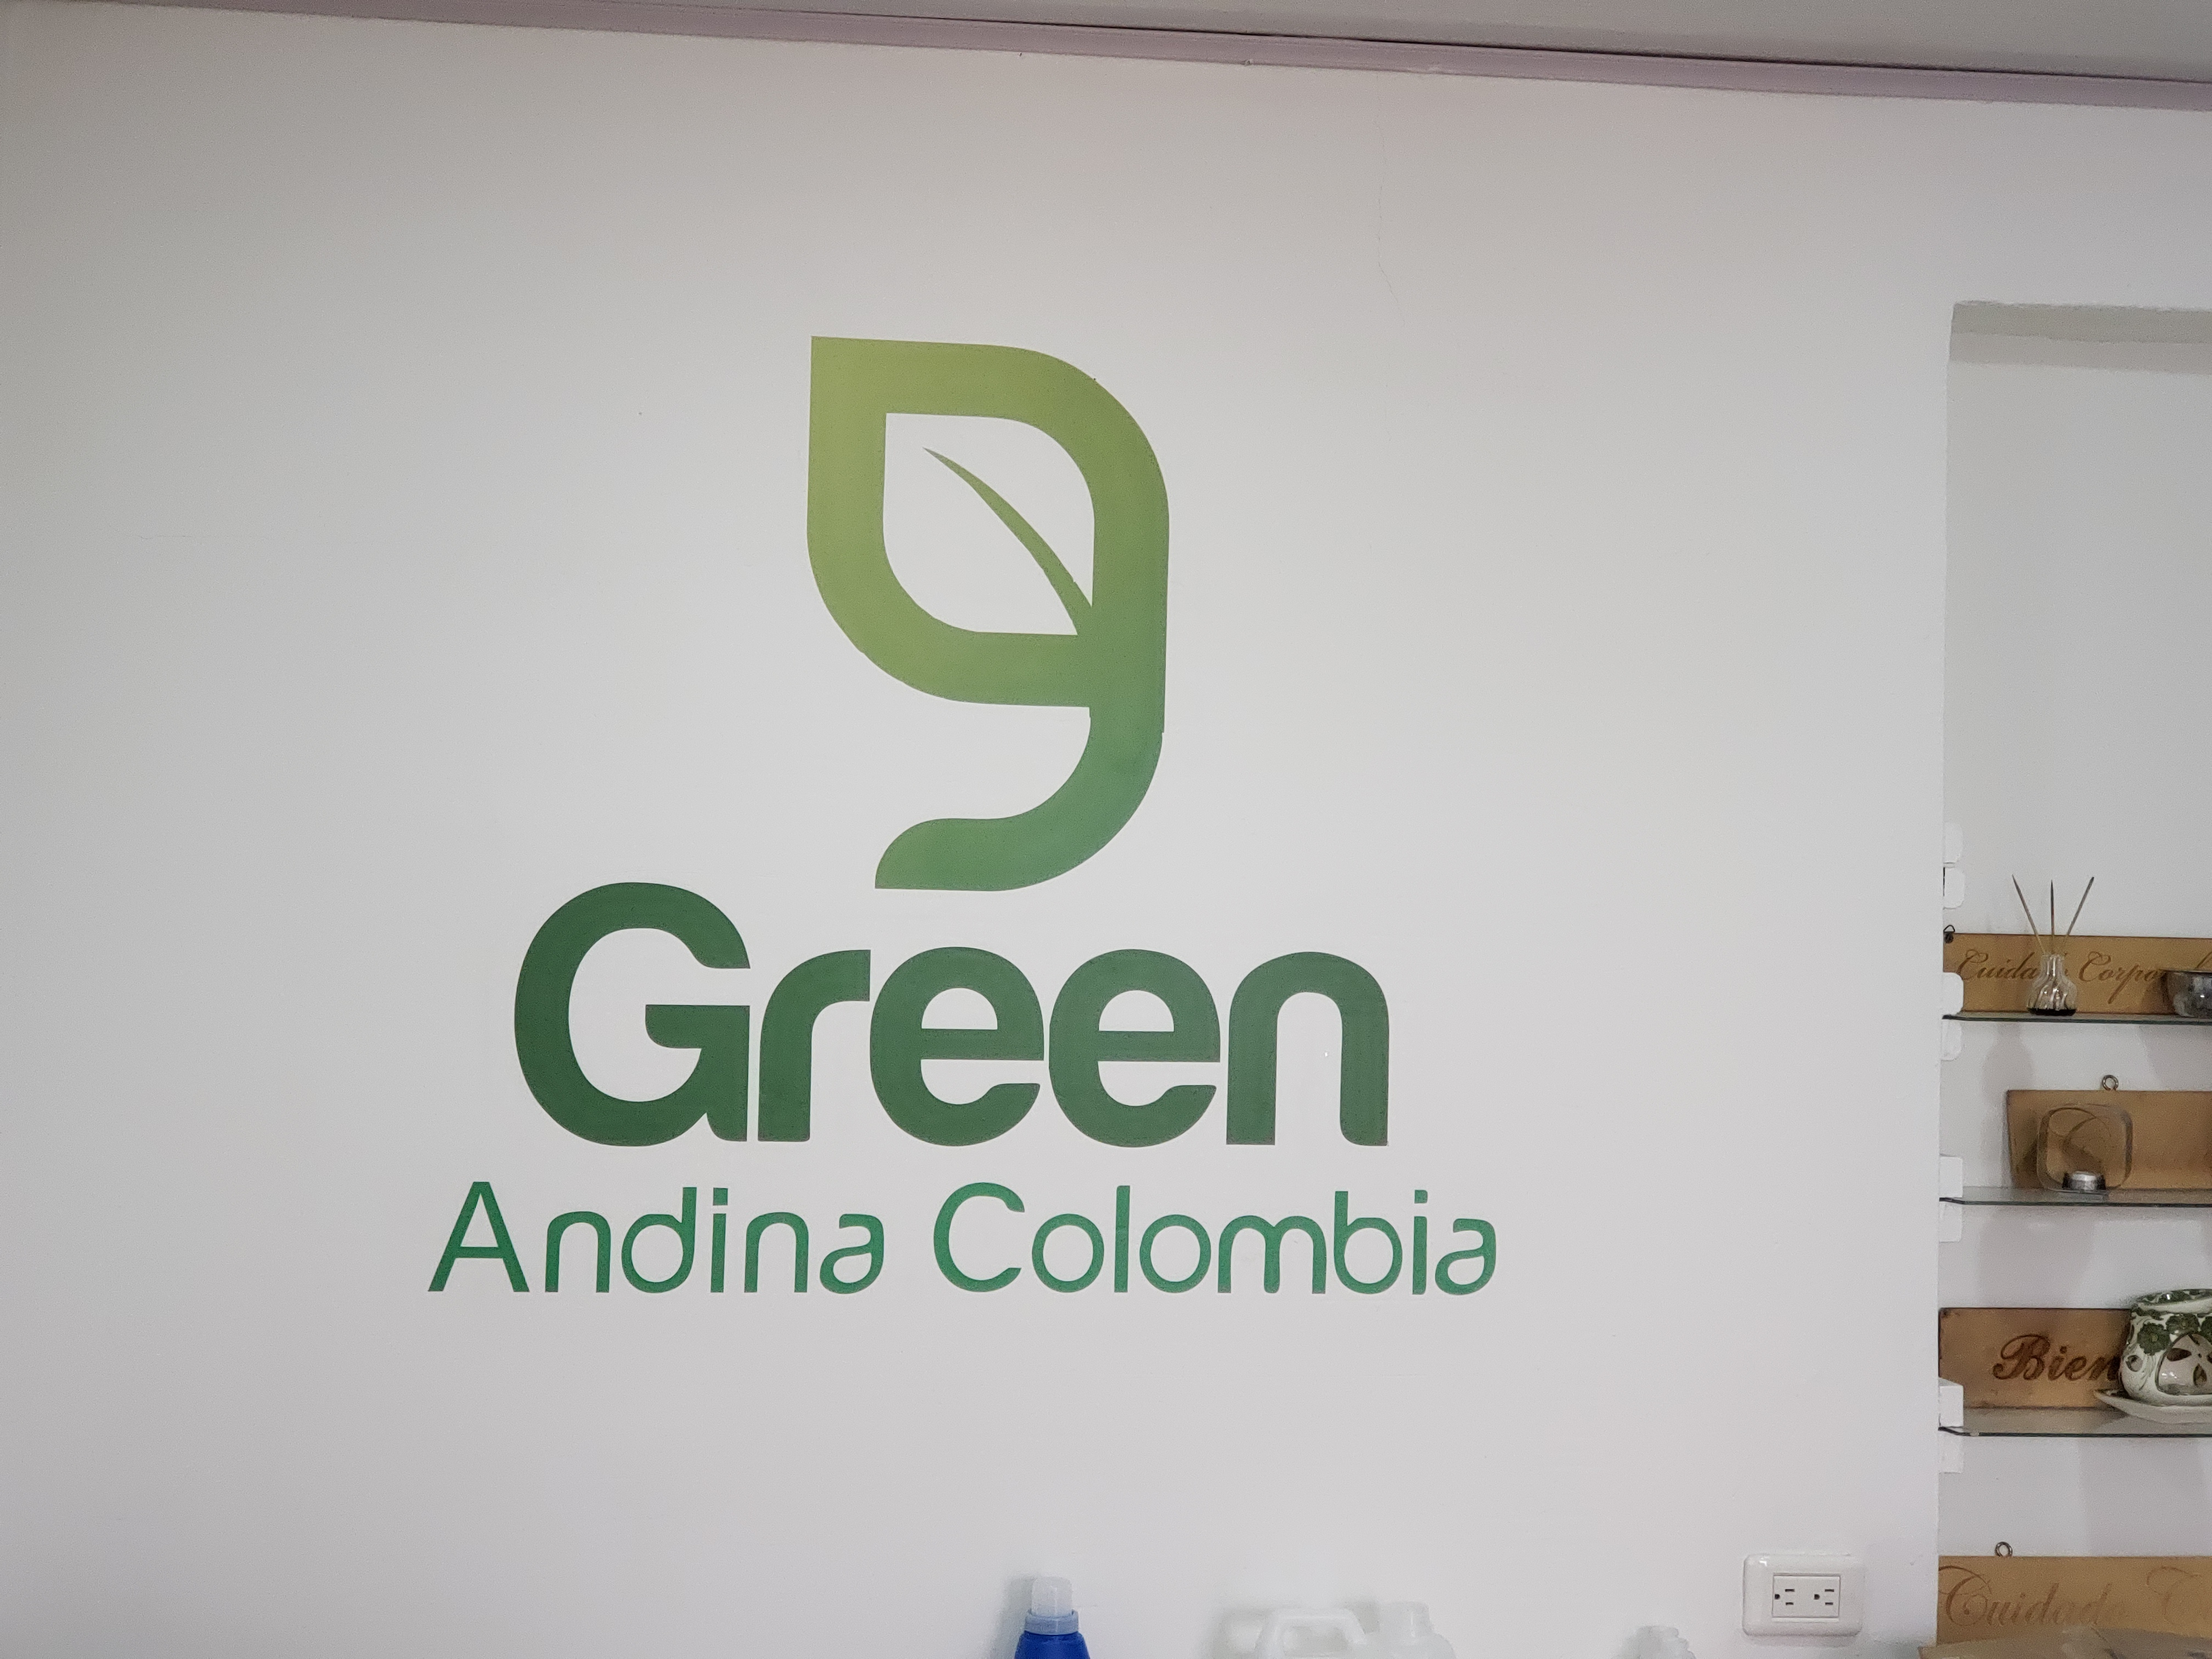 Green Andina Colombia